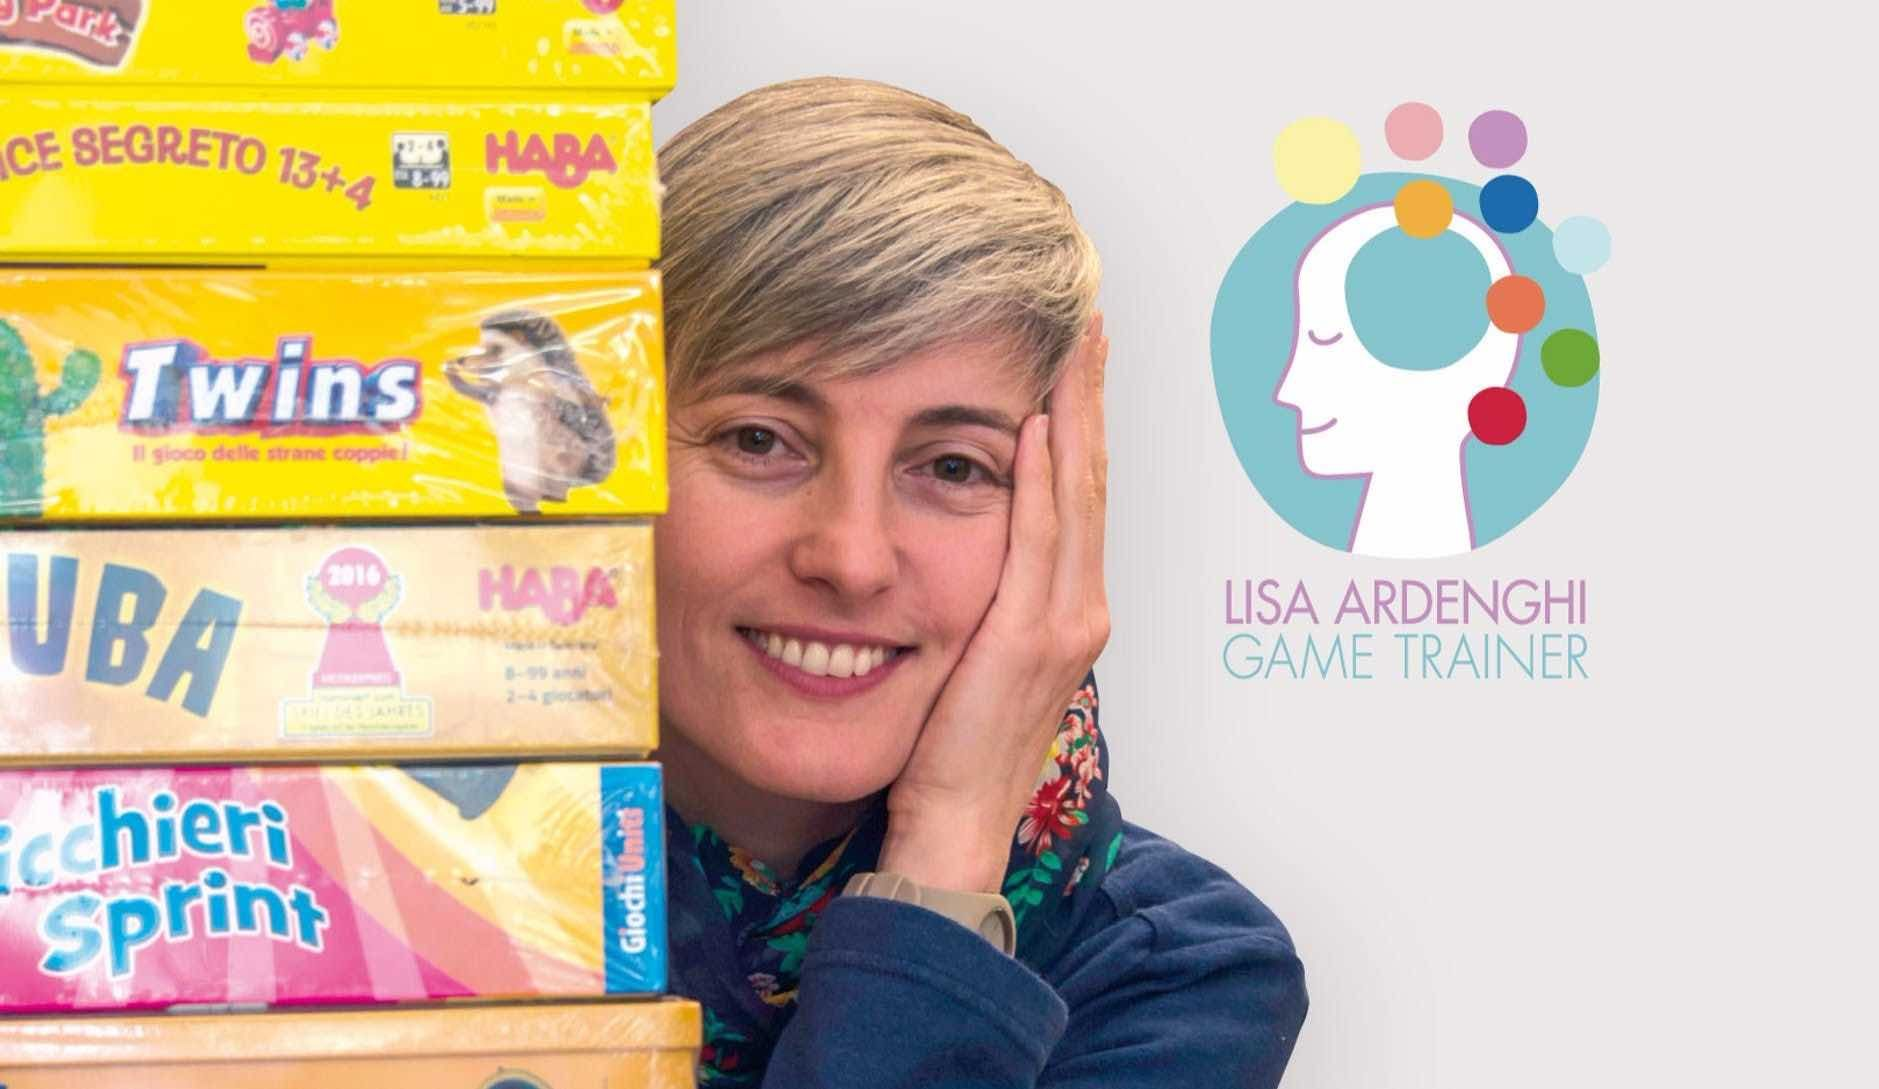 Lisa Ardenghi - Game Trainer